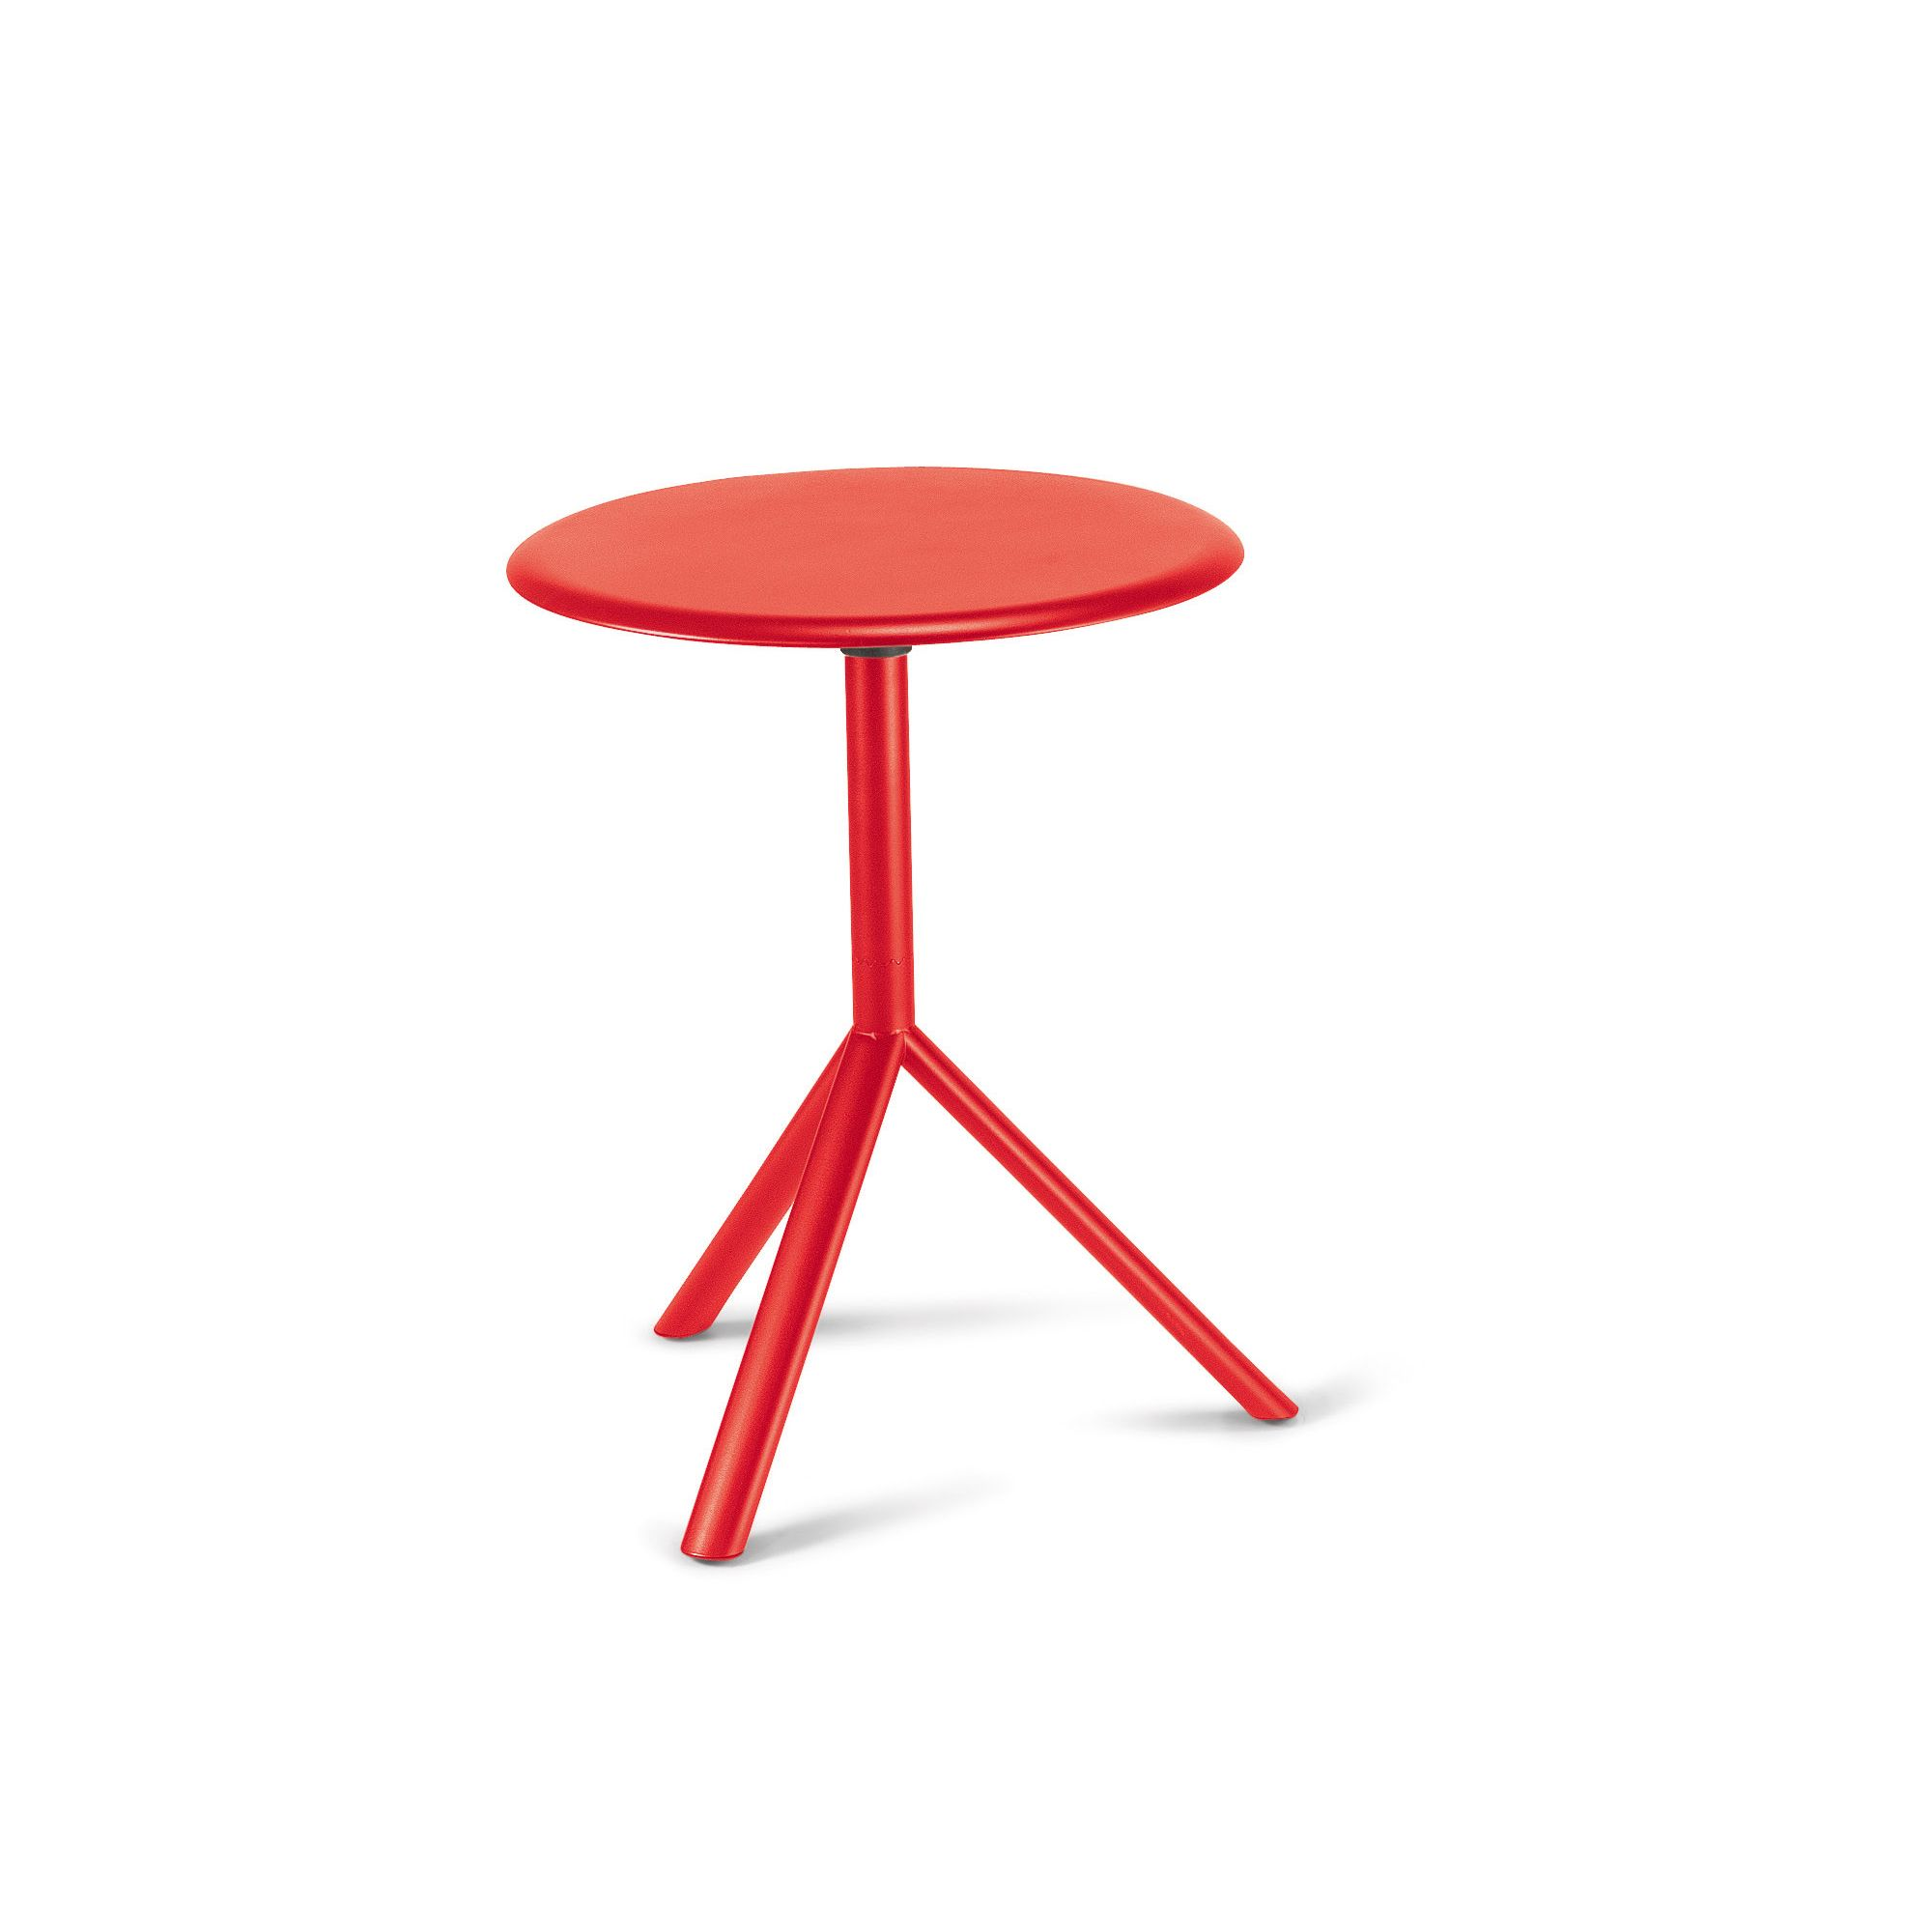 Plank Miura Round Table with Metal Table Top - 73.5cm - Traffic red at Tesco Direct